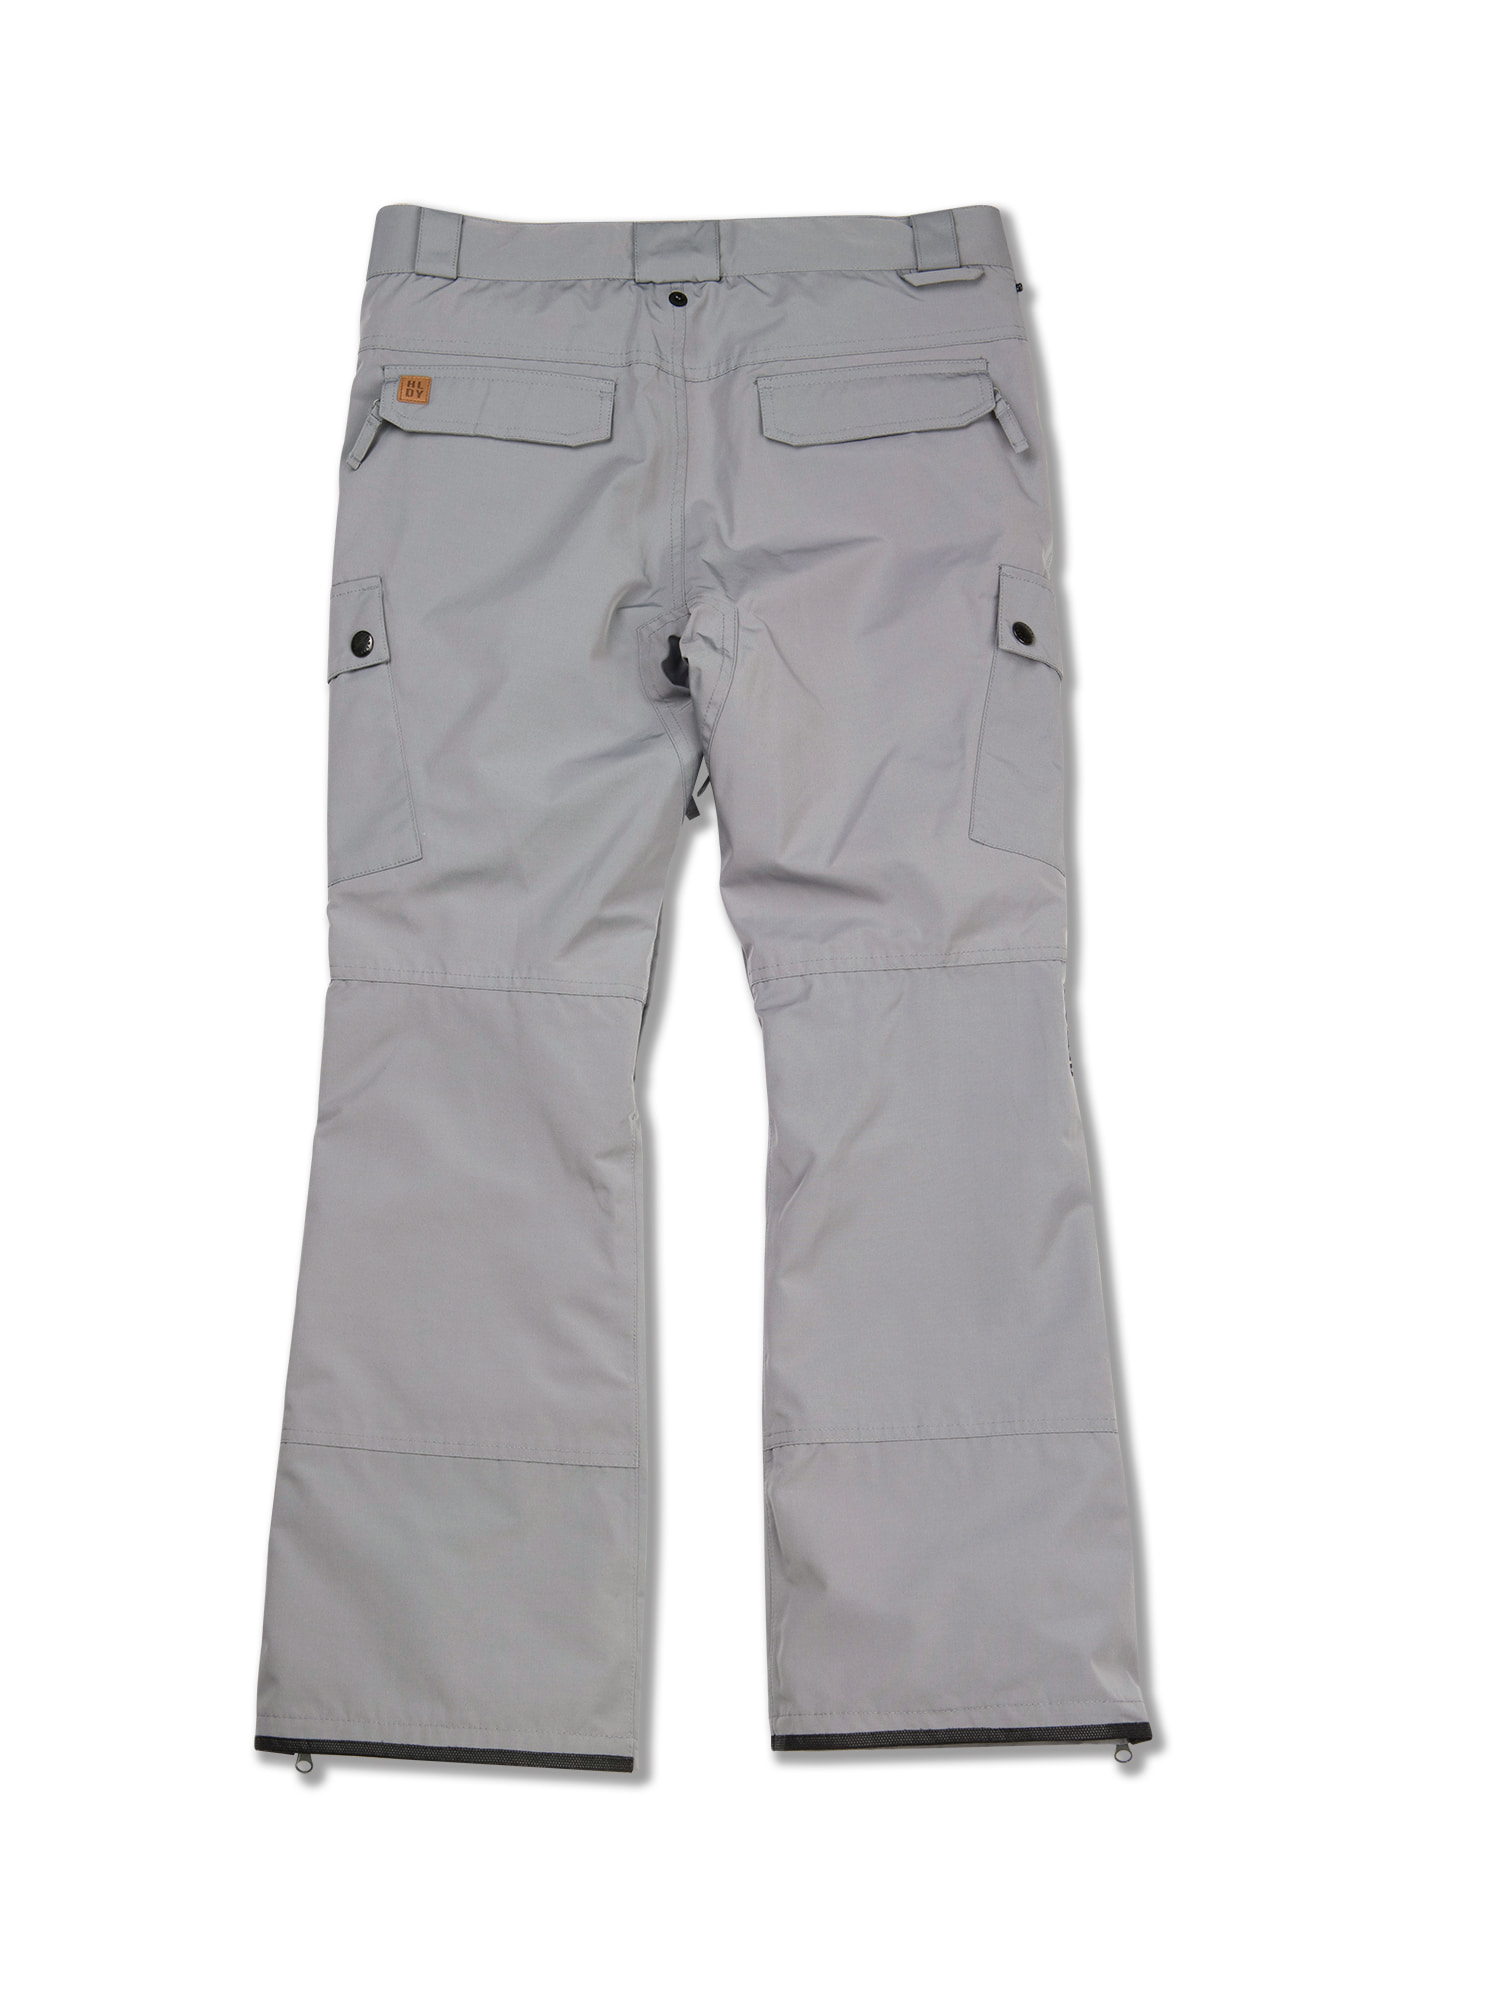 CHATTER pants - grayHOLIDAY OUTERWEAR